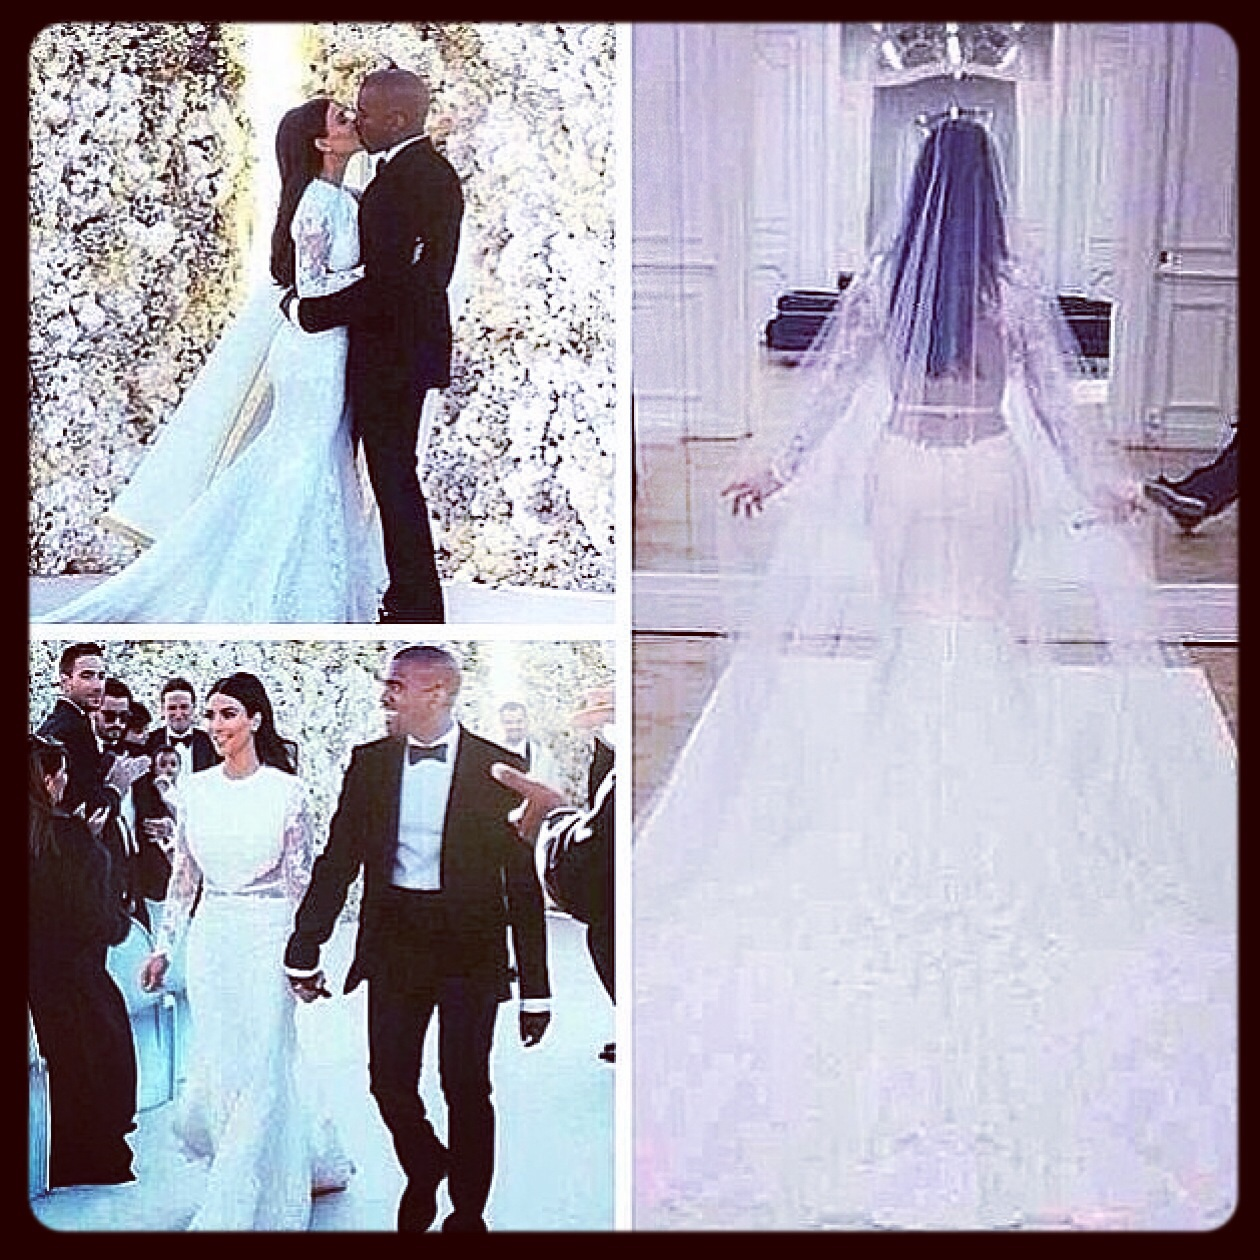 WEDDING-BLISS] Kim Kardashian wedding dress revealed in first photos ...